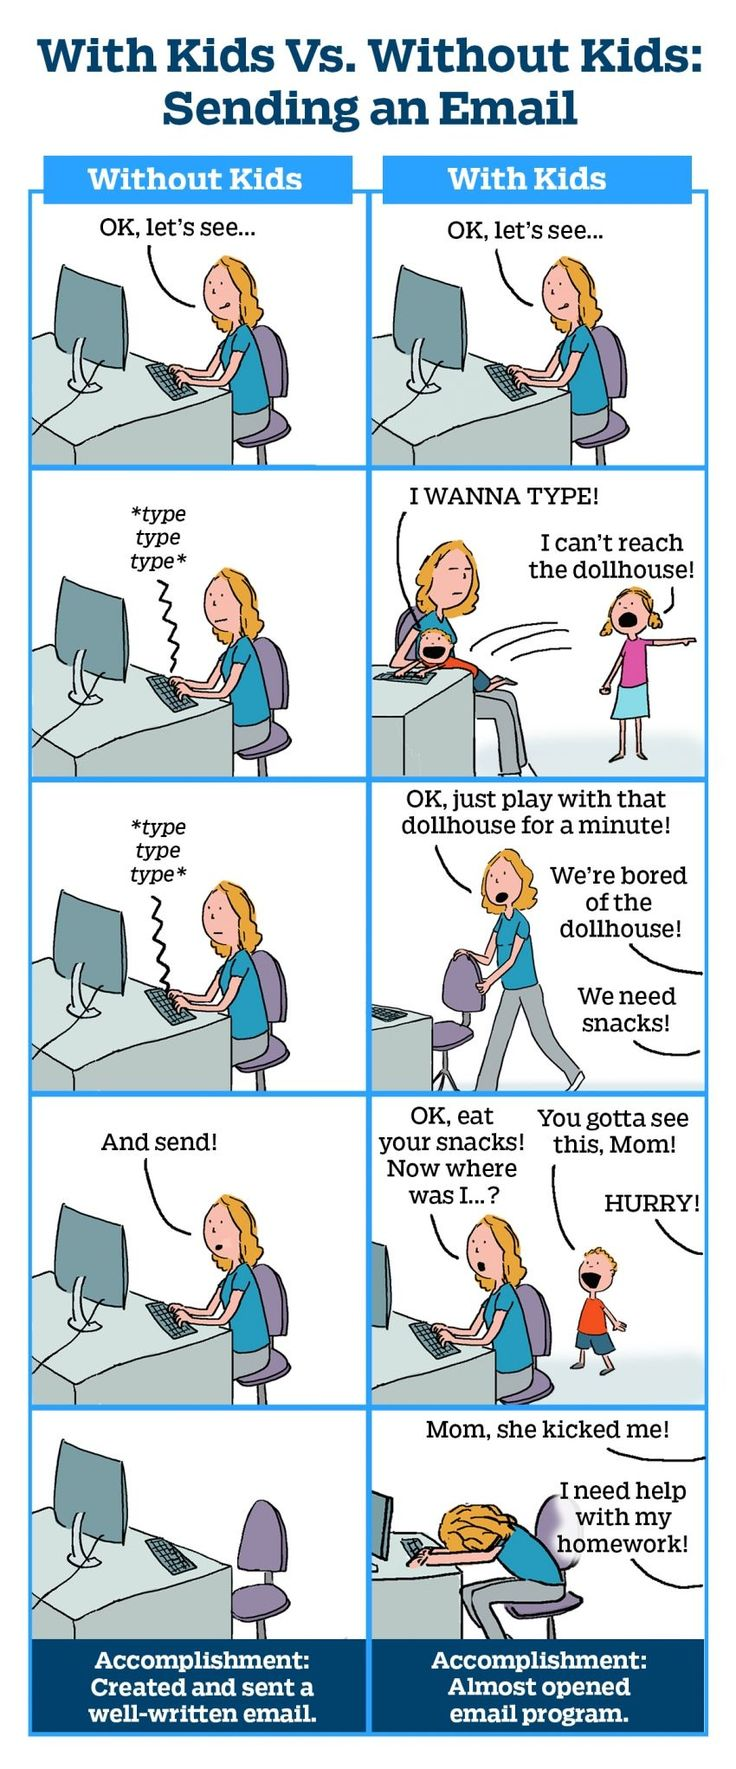 With Kids vs. Without Kids: Sending an Email